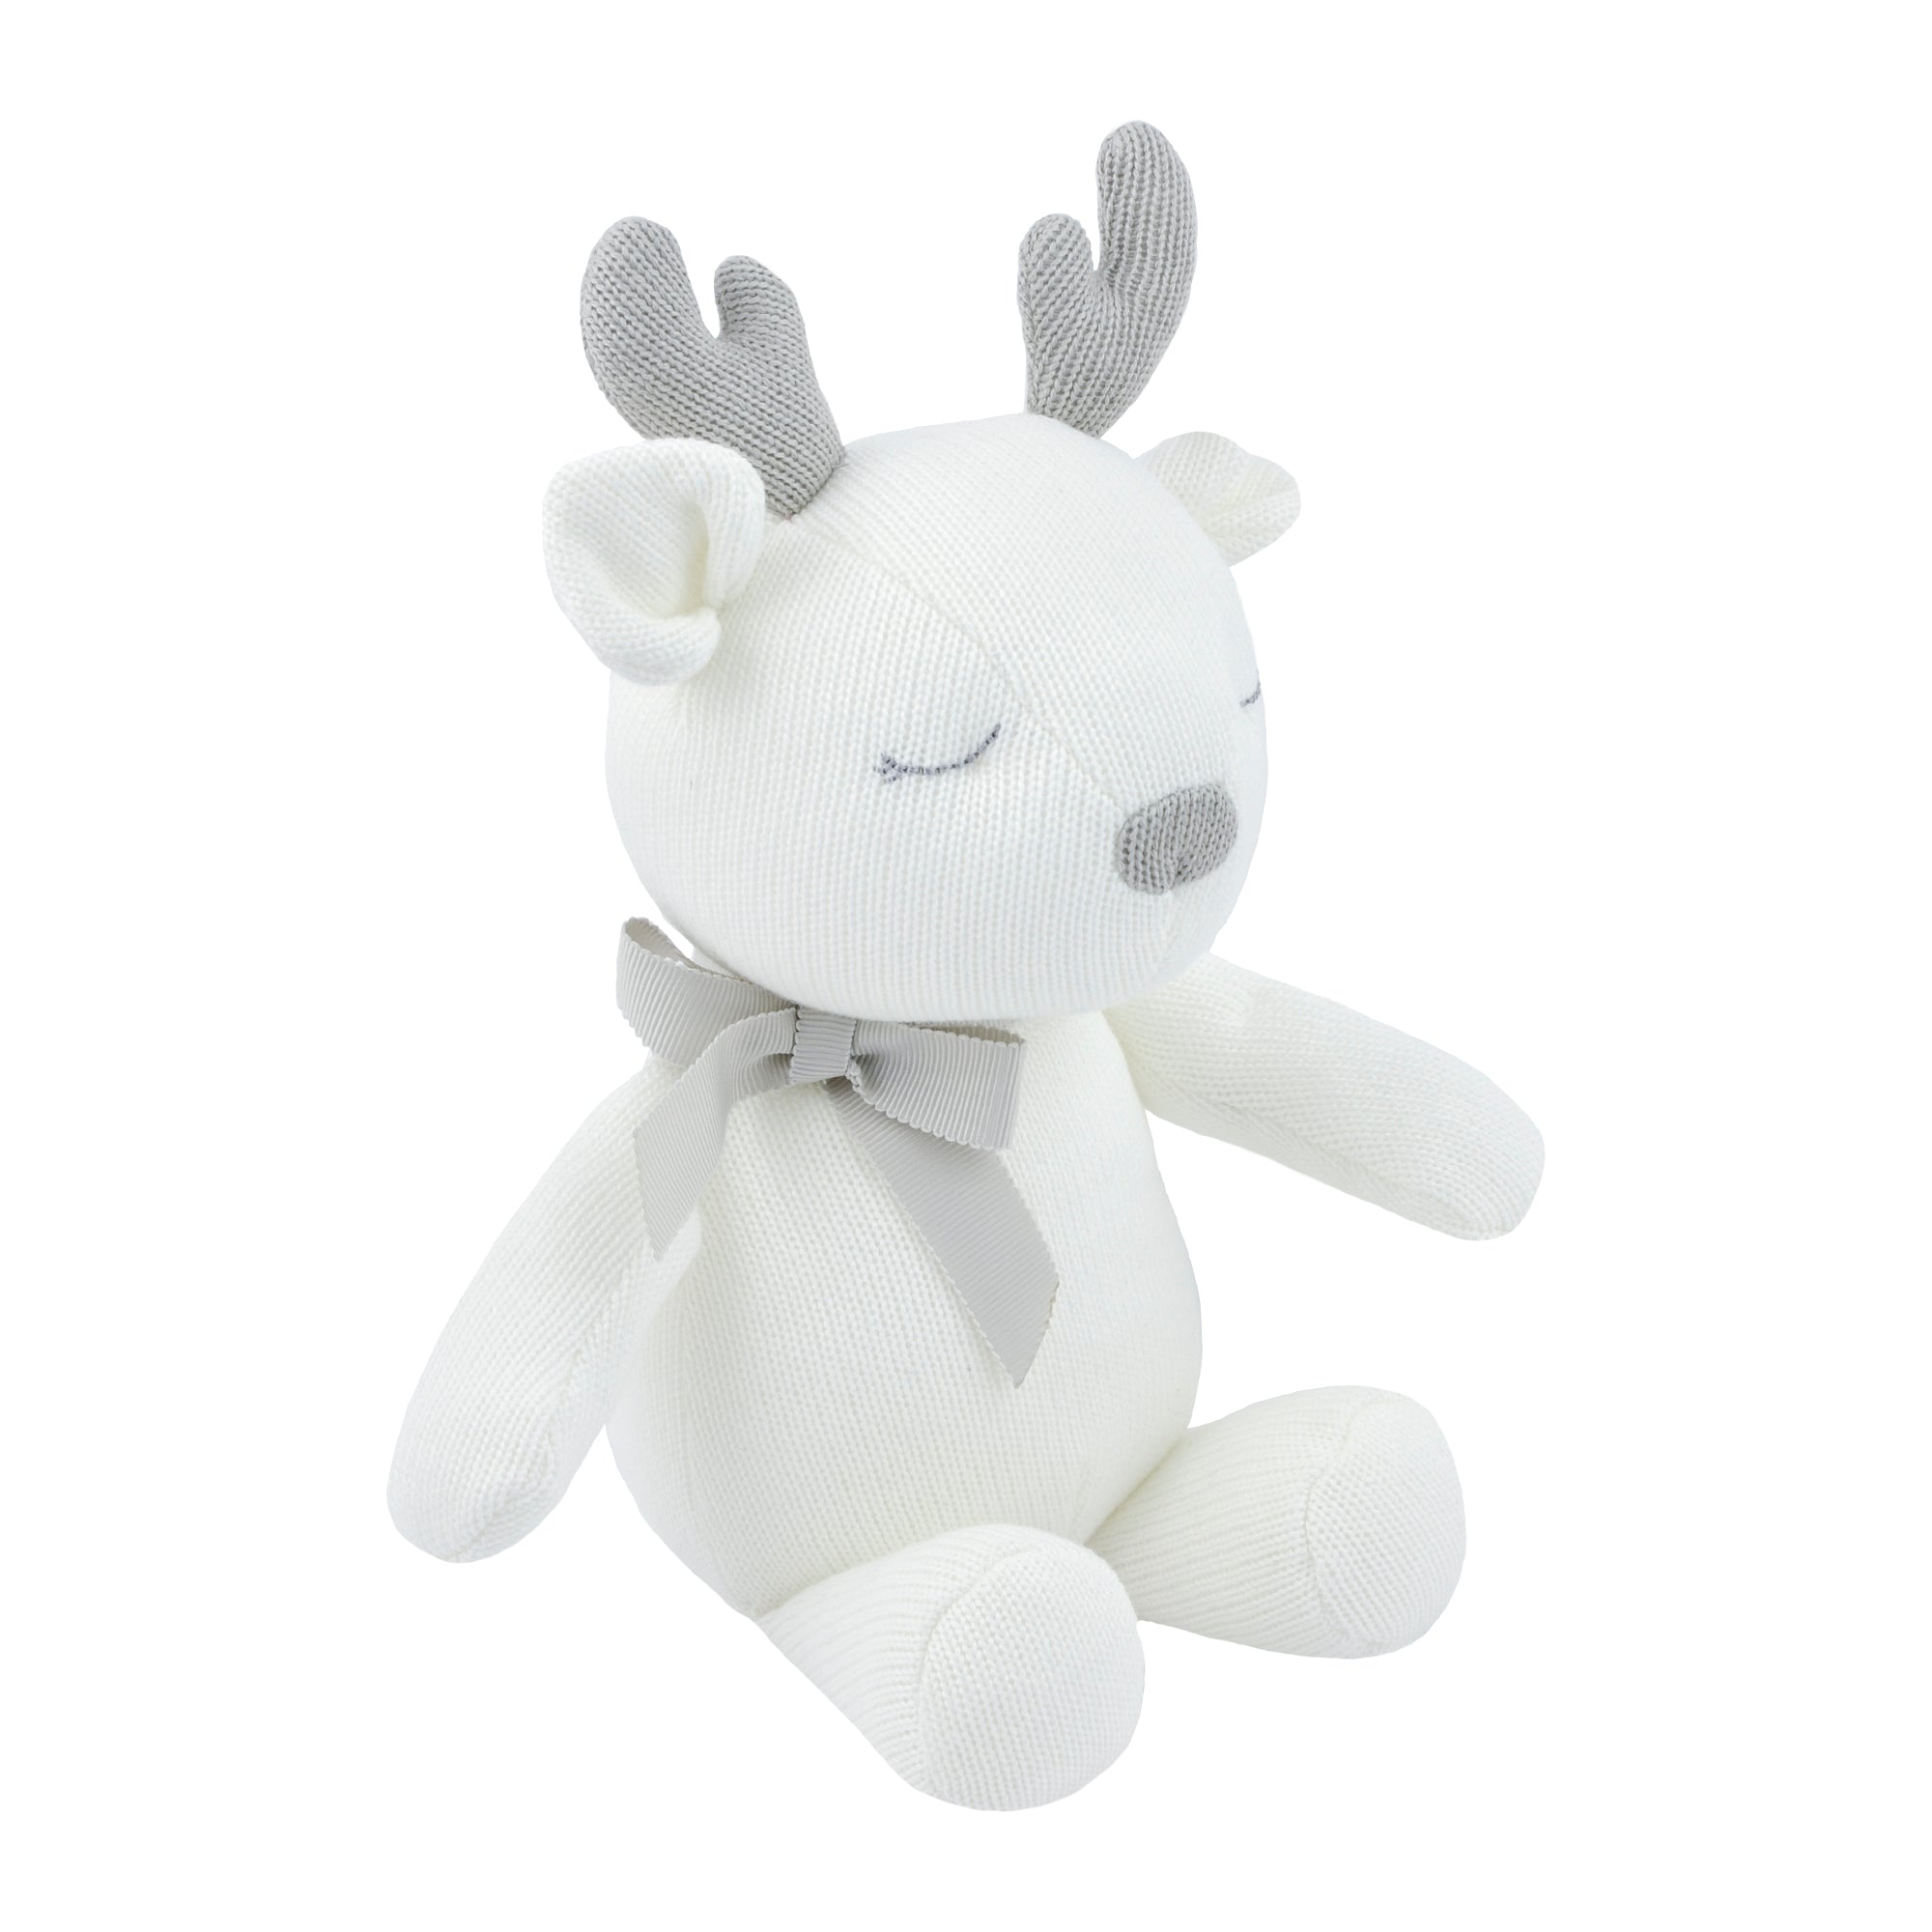 Baby Neutral Deer Plush Toy-Gerber Childrenswear Wholesale